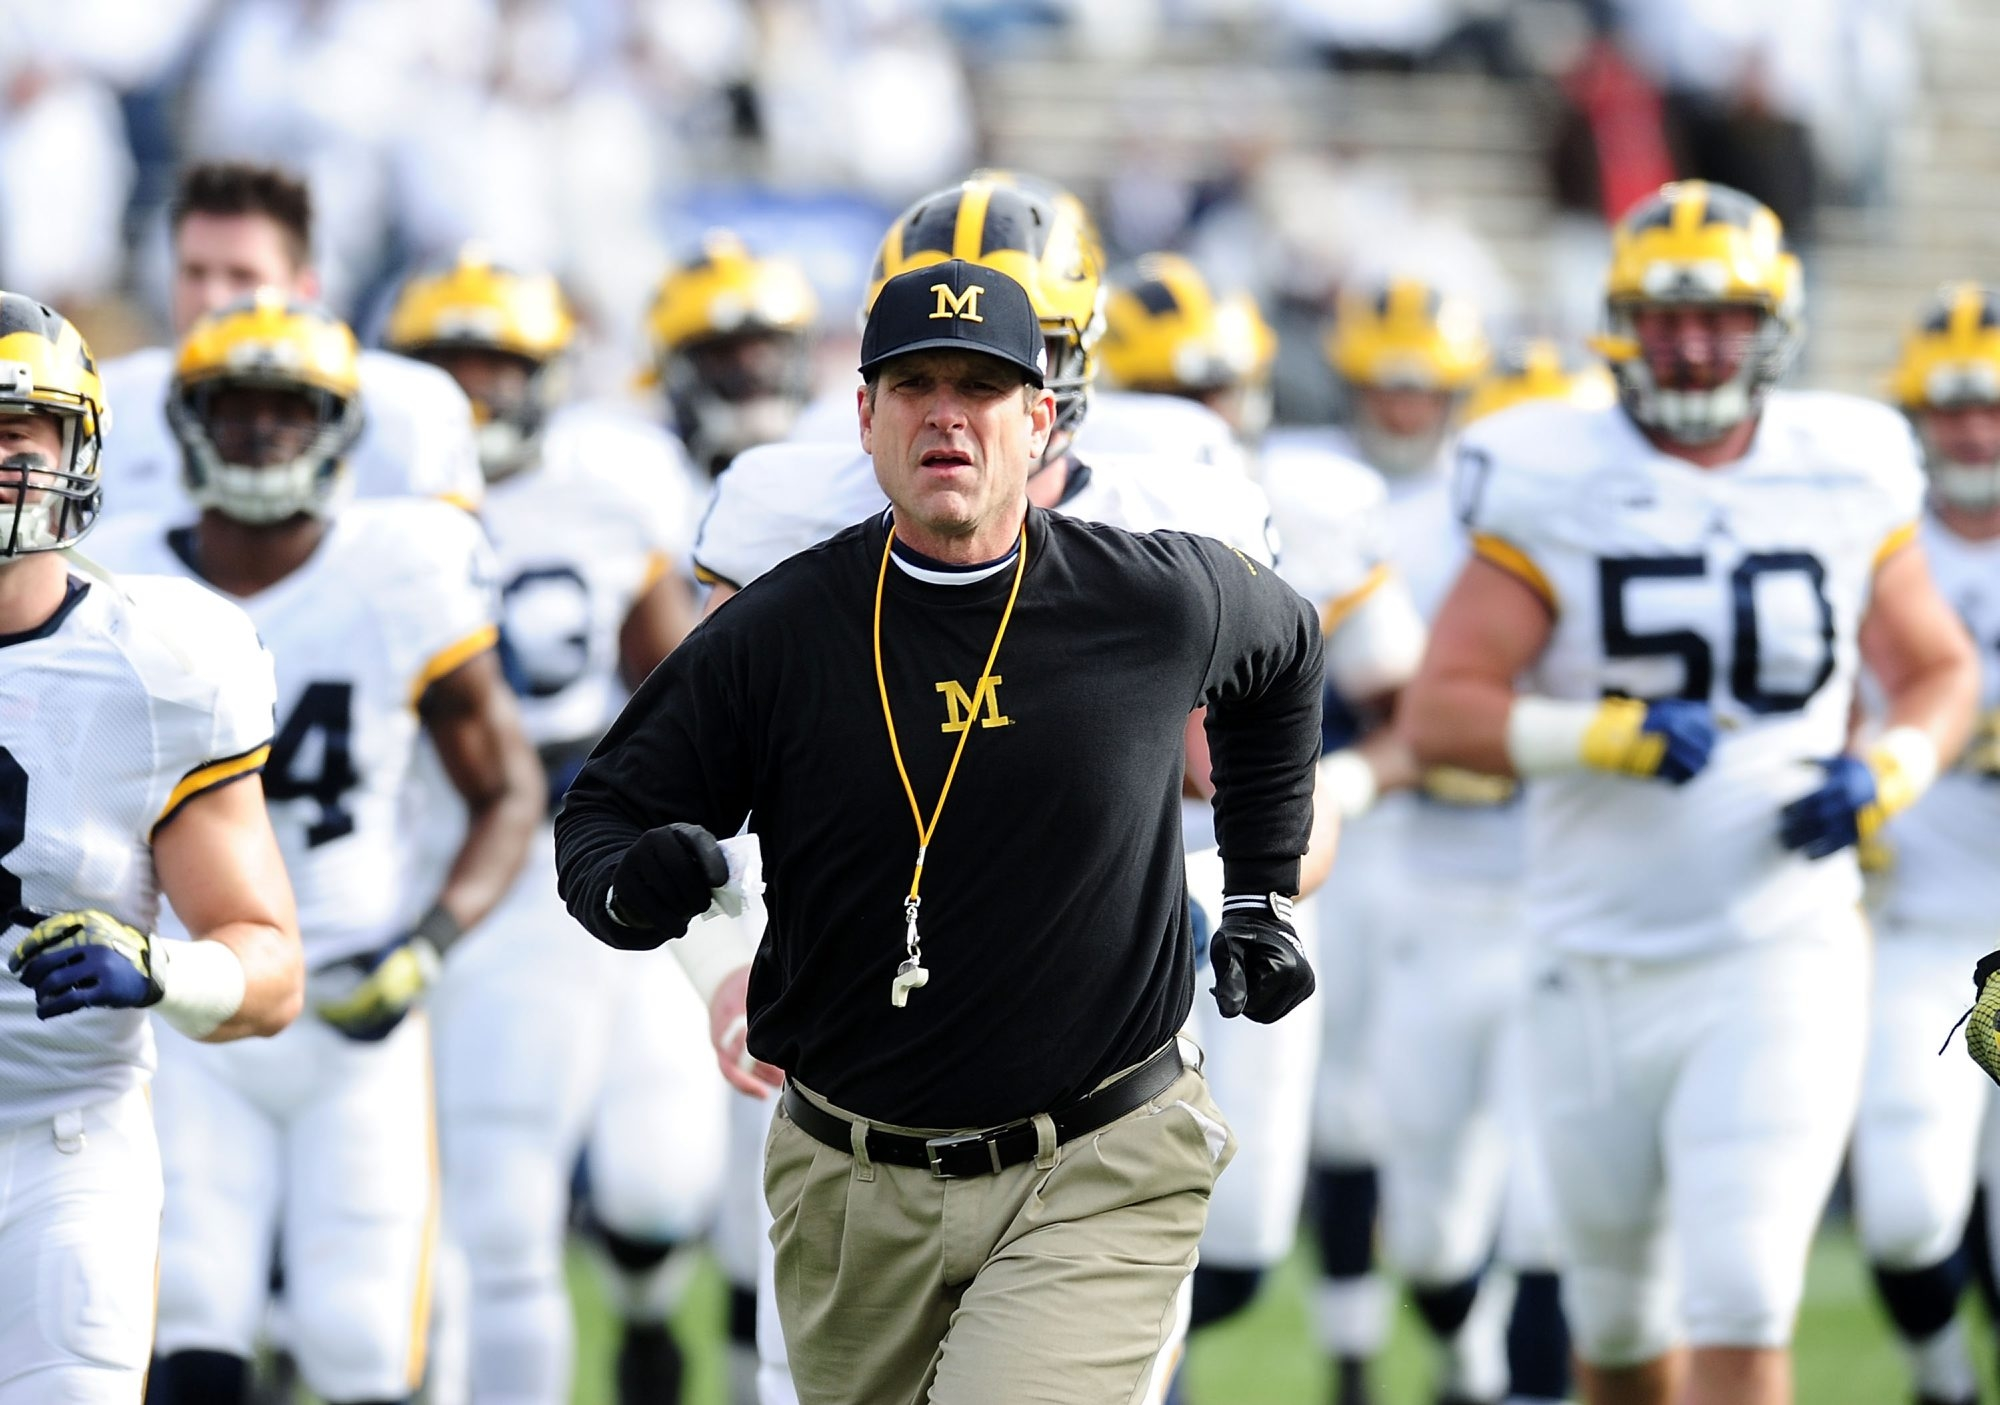 What Jim Harbaugh did wasn't wrong, but it shows the darker side of college recruiting.